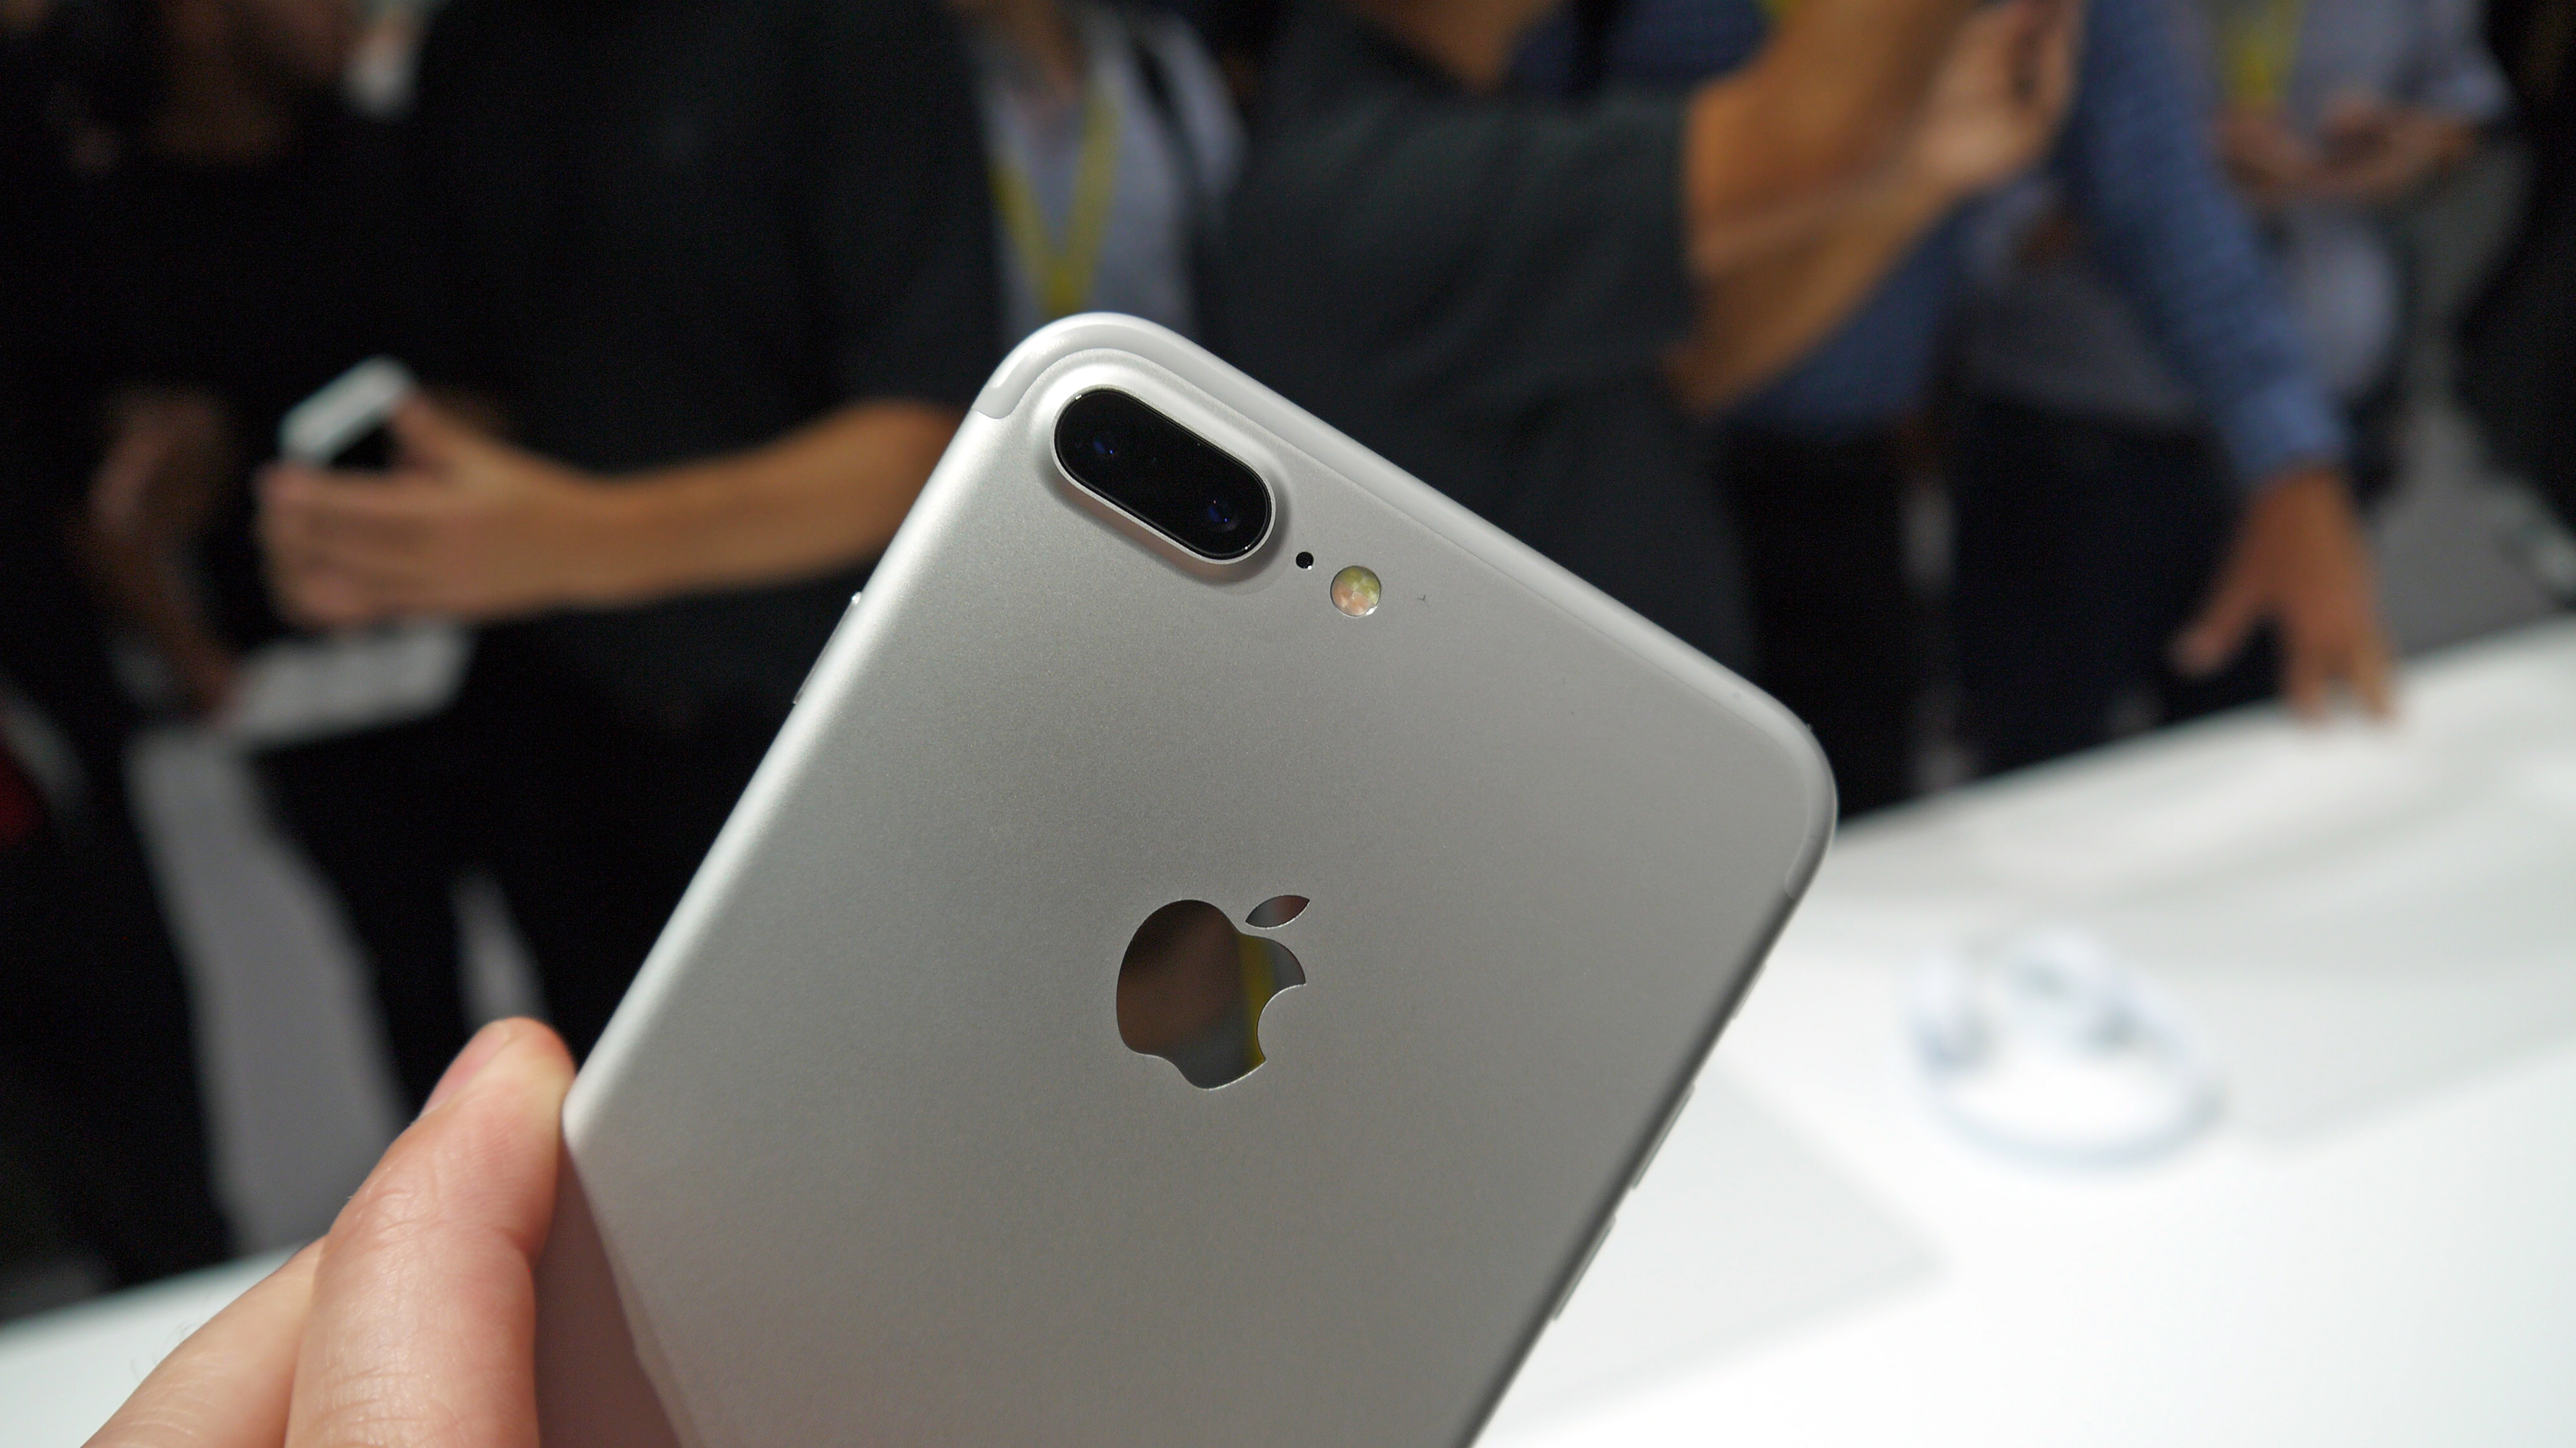 Iphone 2 release date in Sydney